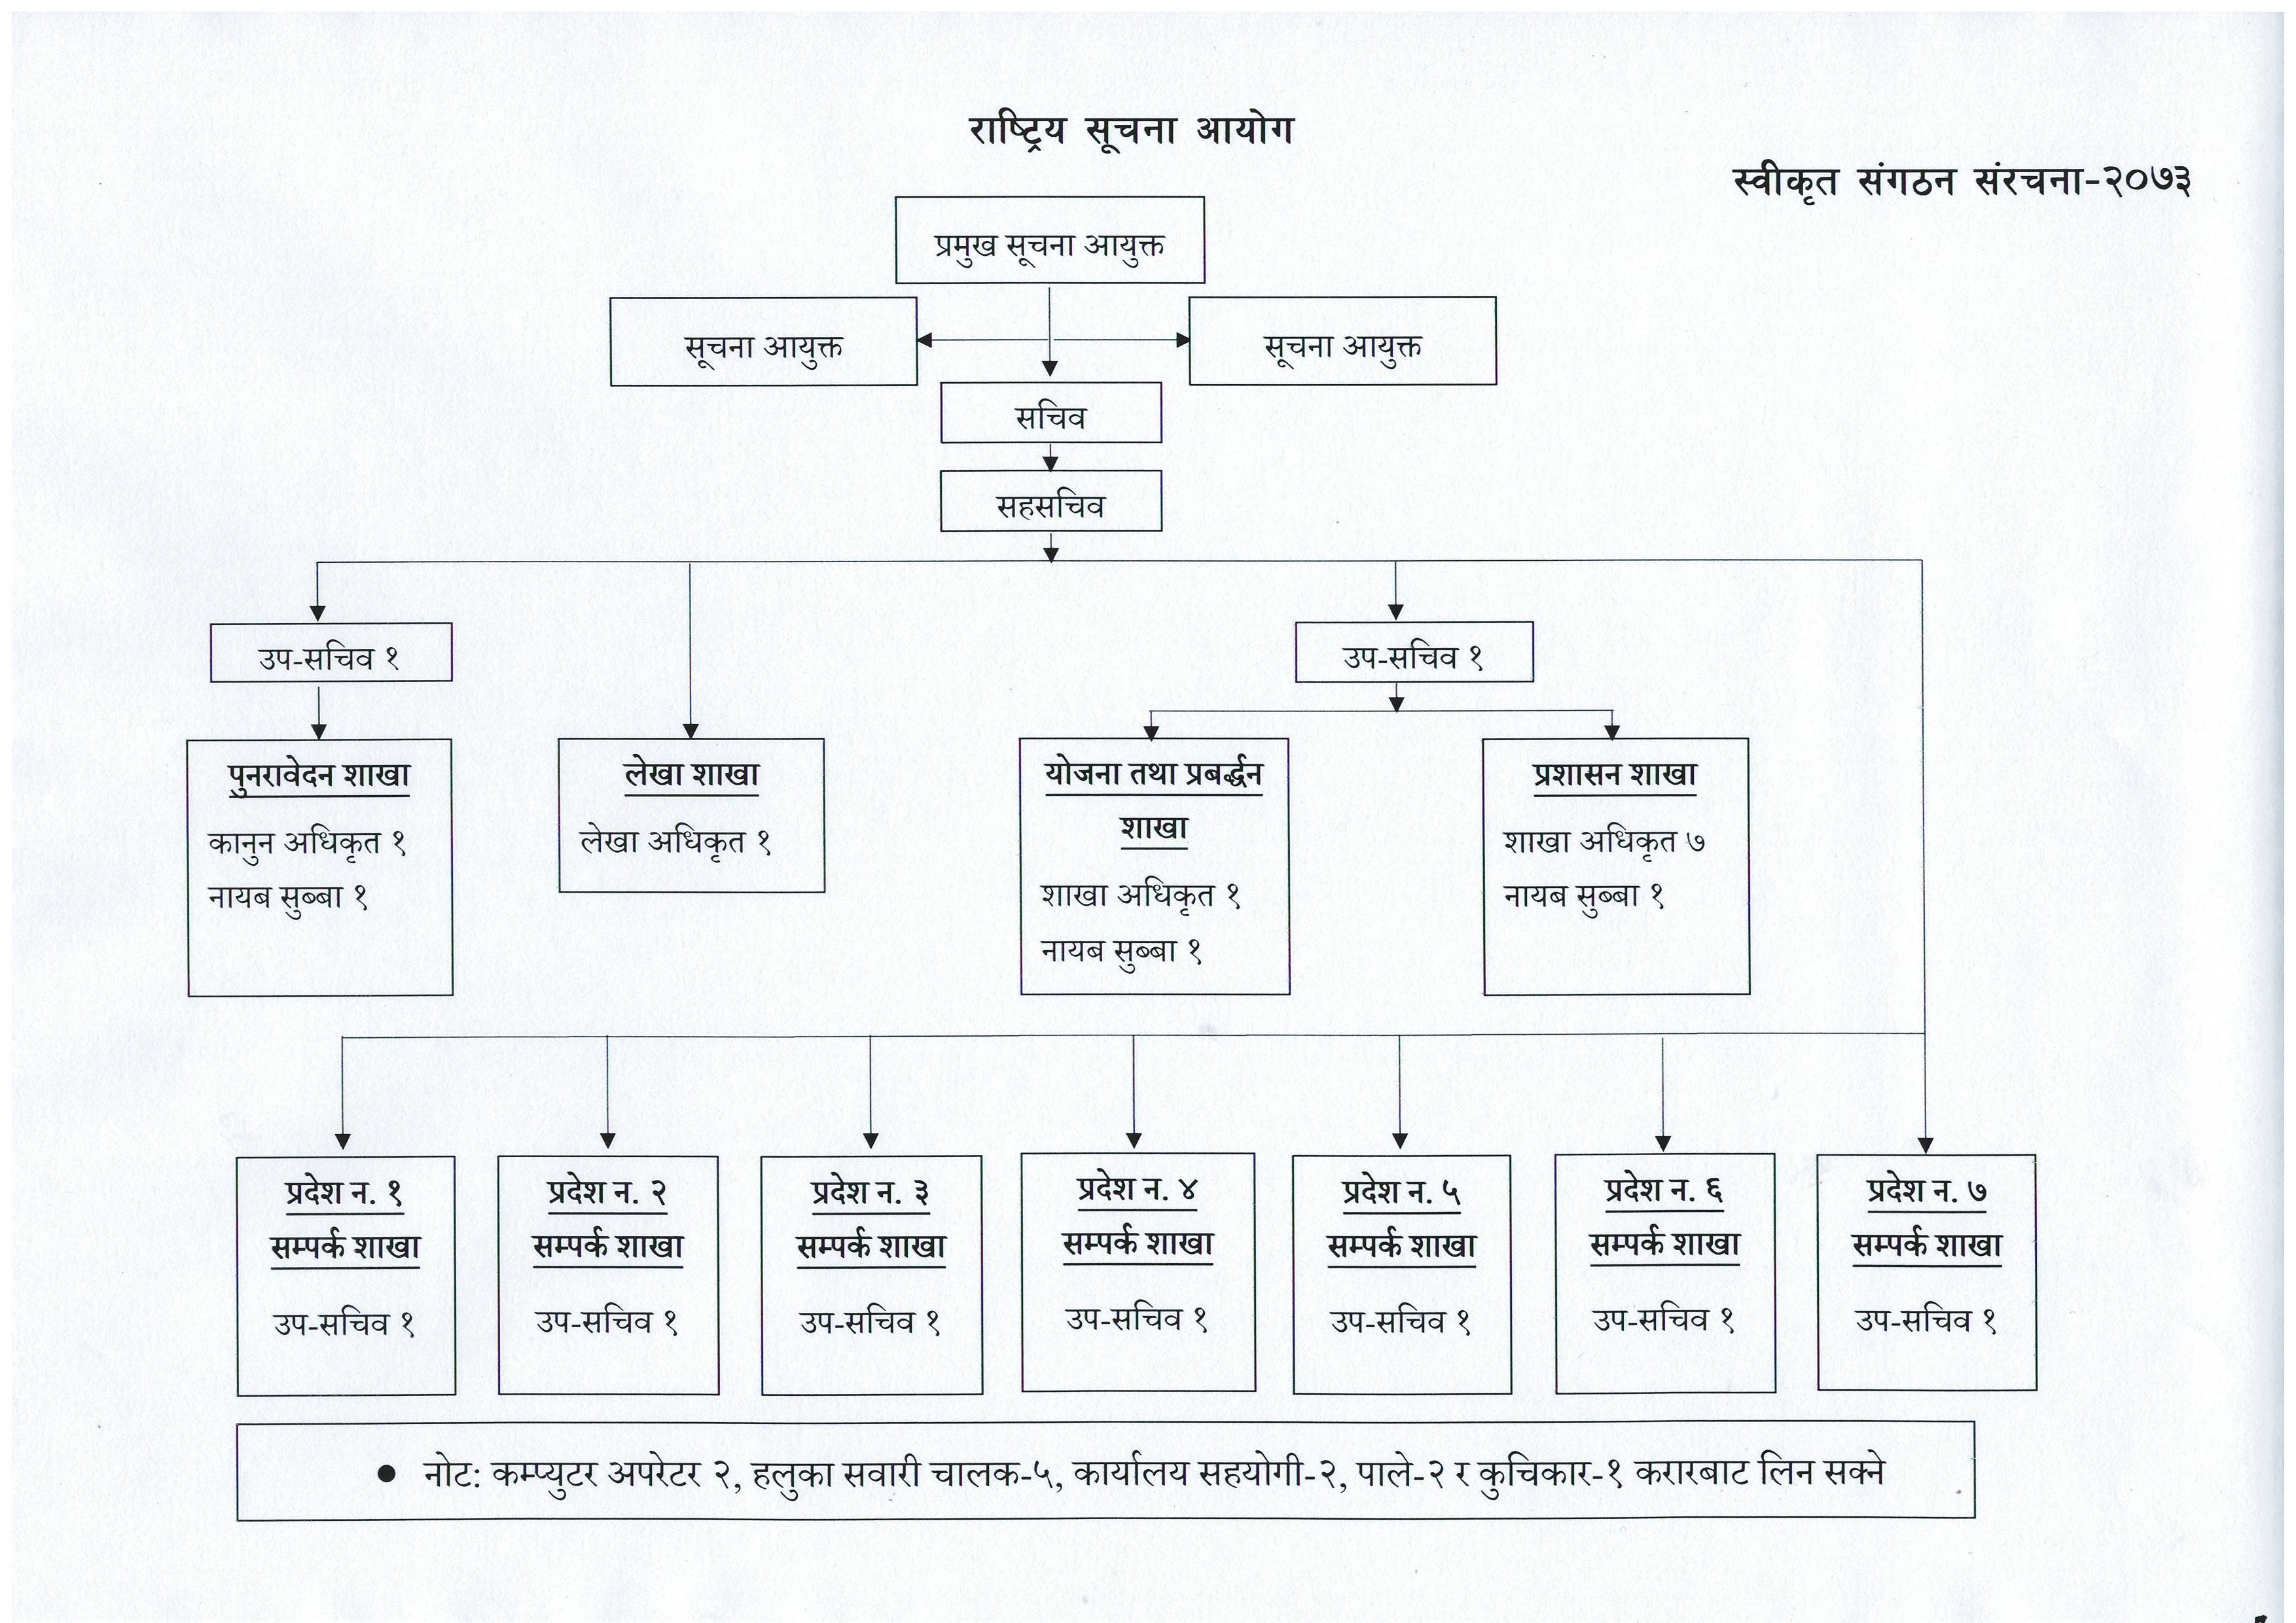 Organizational Structure of NIC